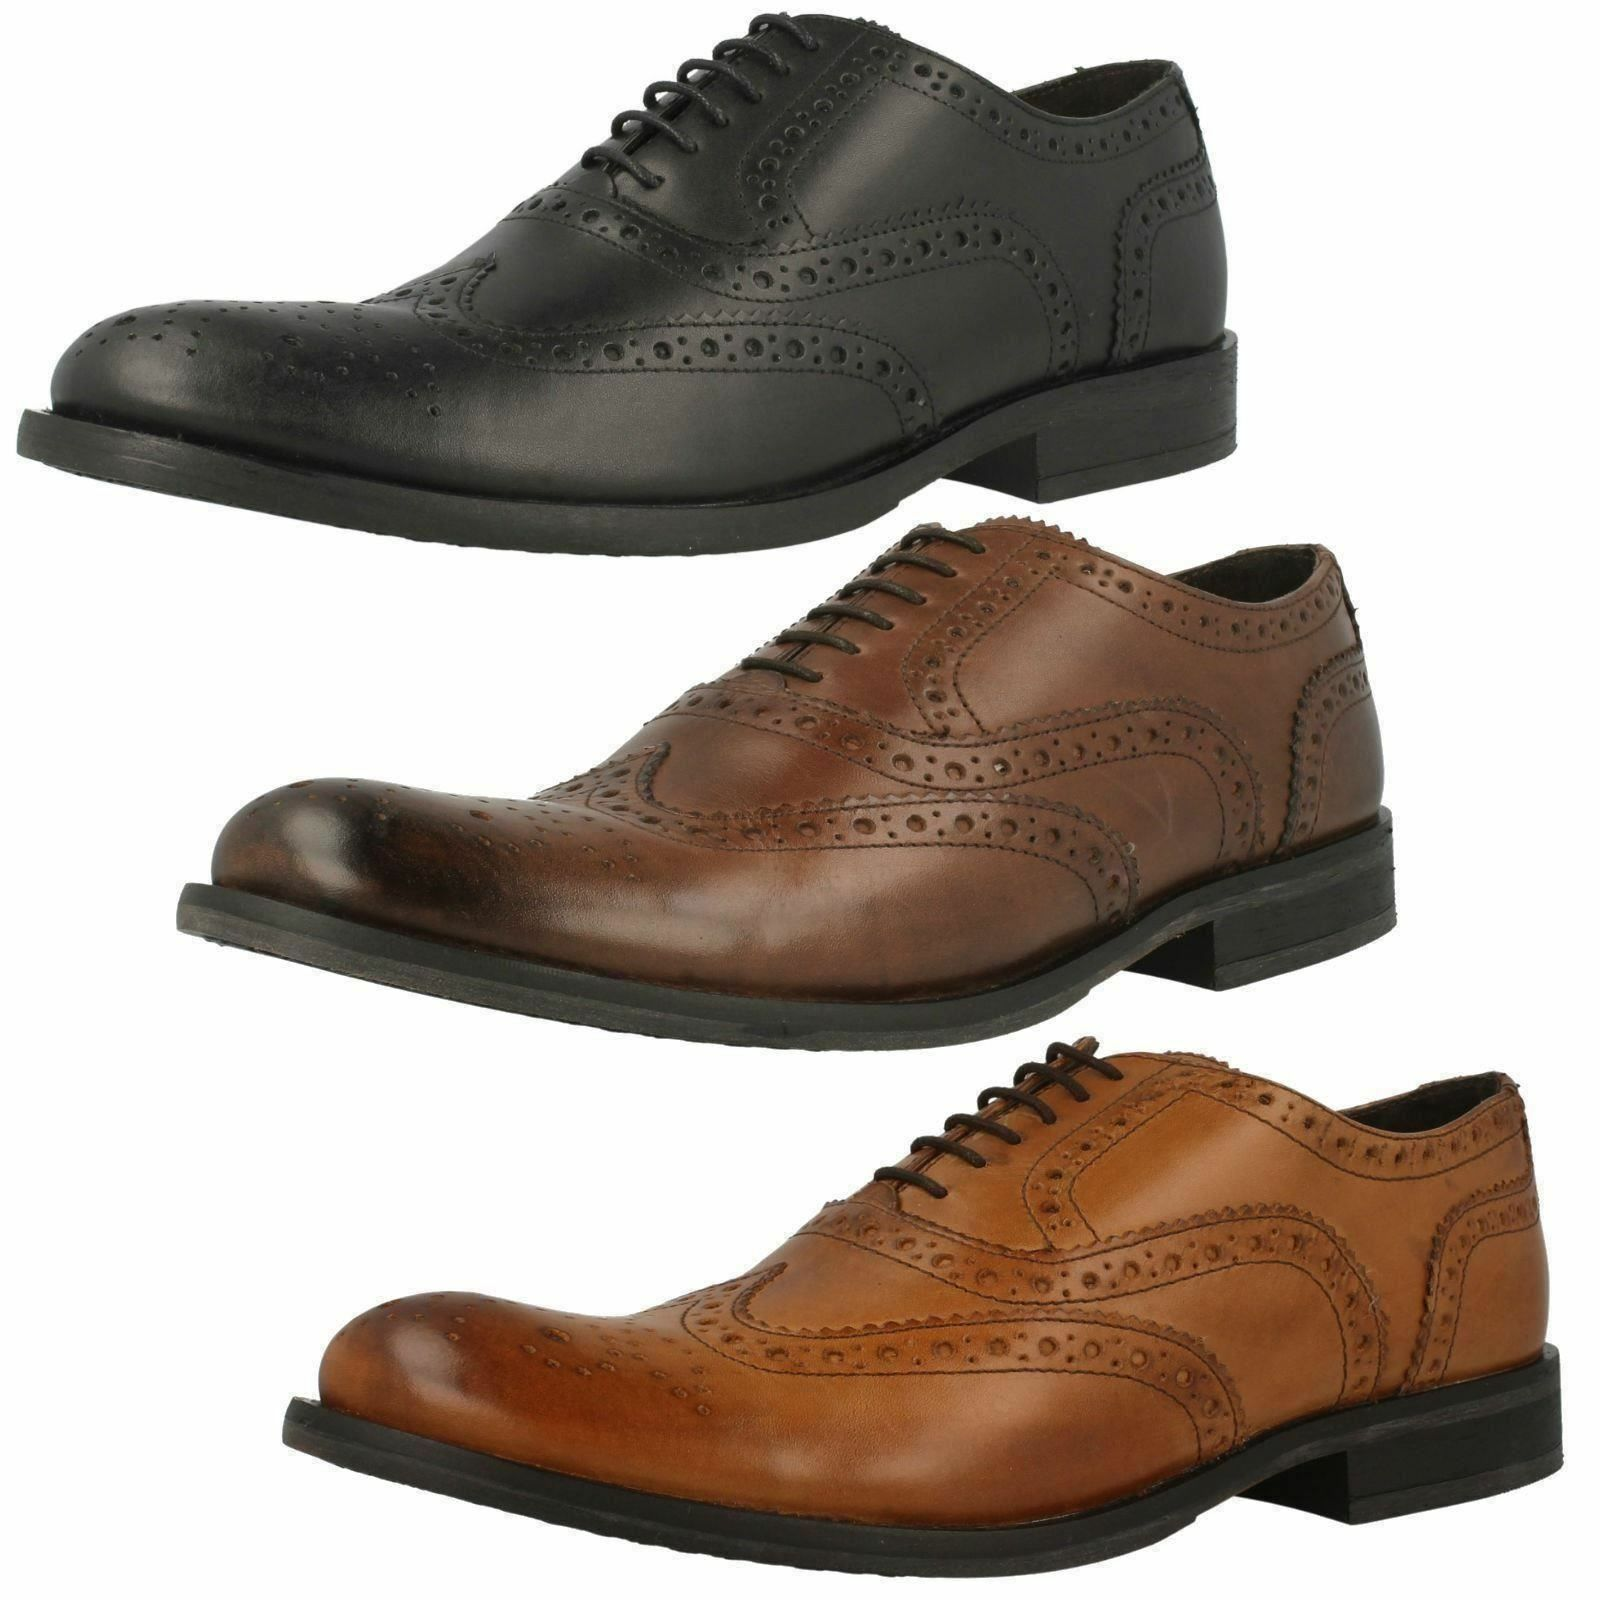 Da Uomo Base London Pelle Walnut Mto cerosa in Pelle London Smart CALATA Stile Lacci Scarpe bdd34c